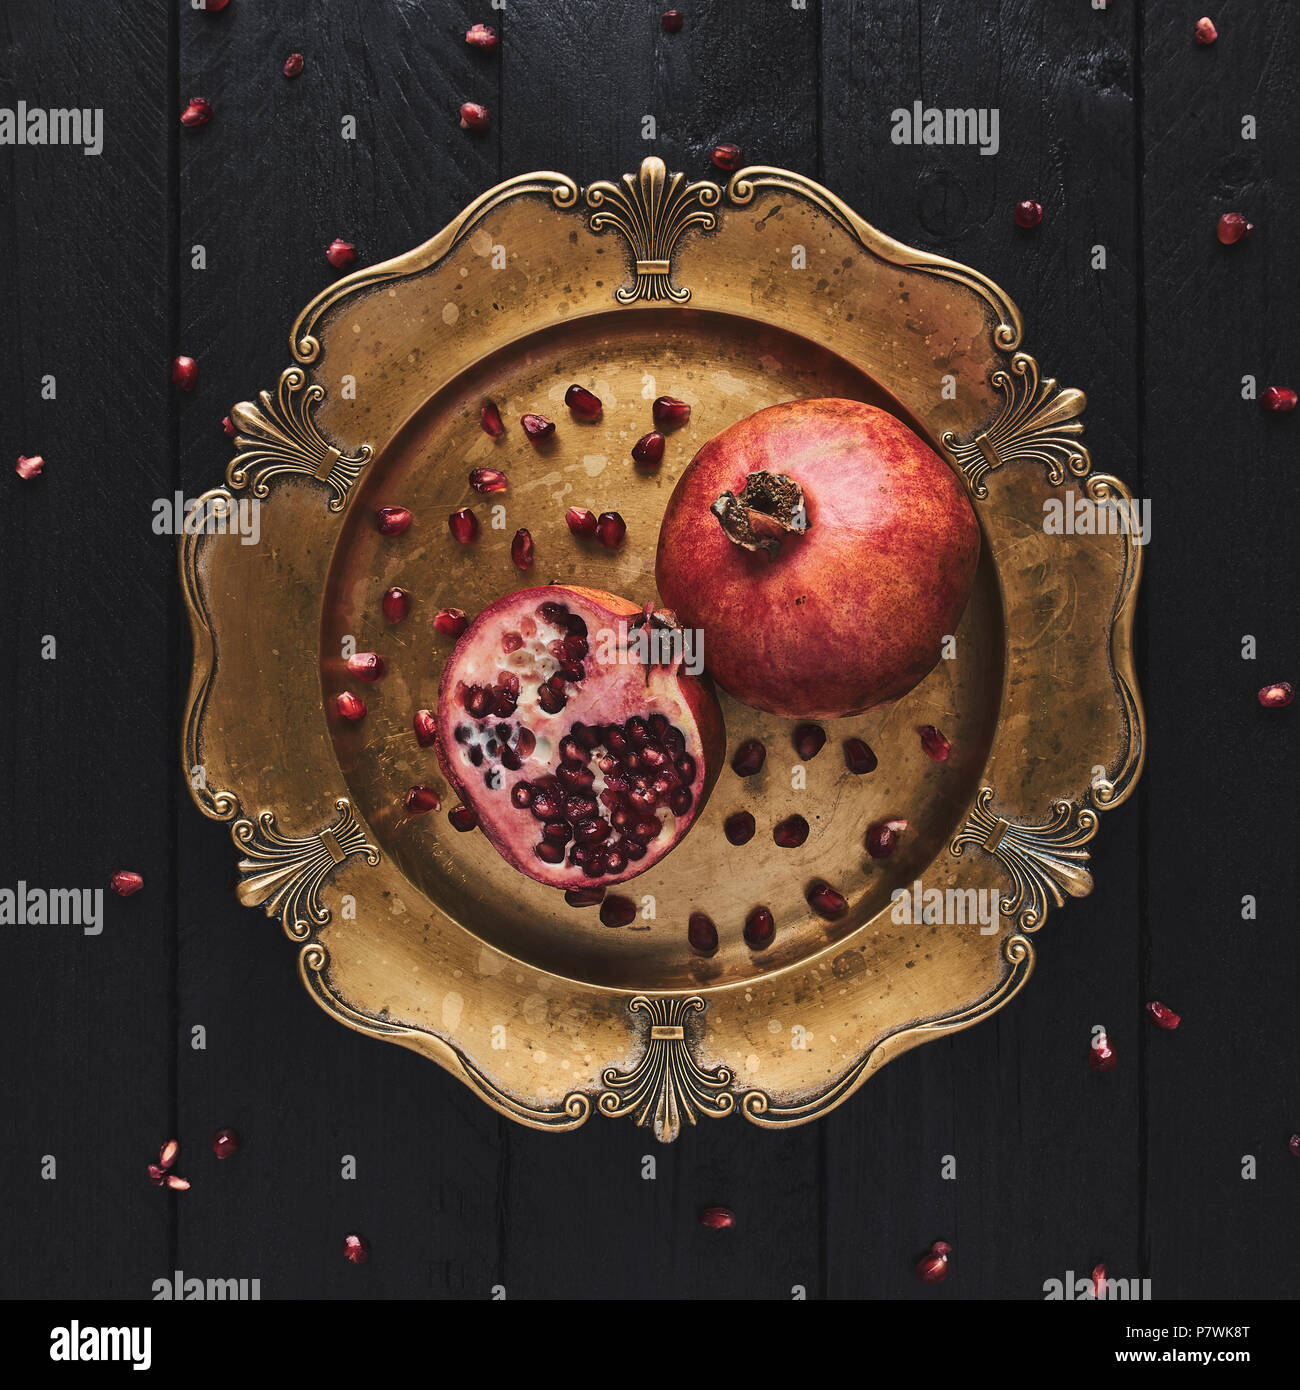 Flat lay of ripe pomegranate fruit surrounded by seeds on an old golden serving plate, black wooden vintage background. Top view, square crop. - Stock Image